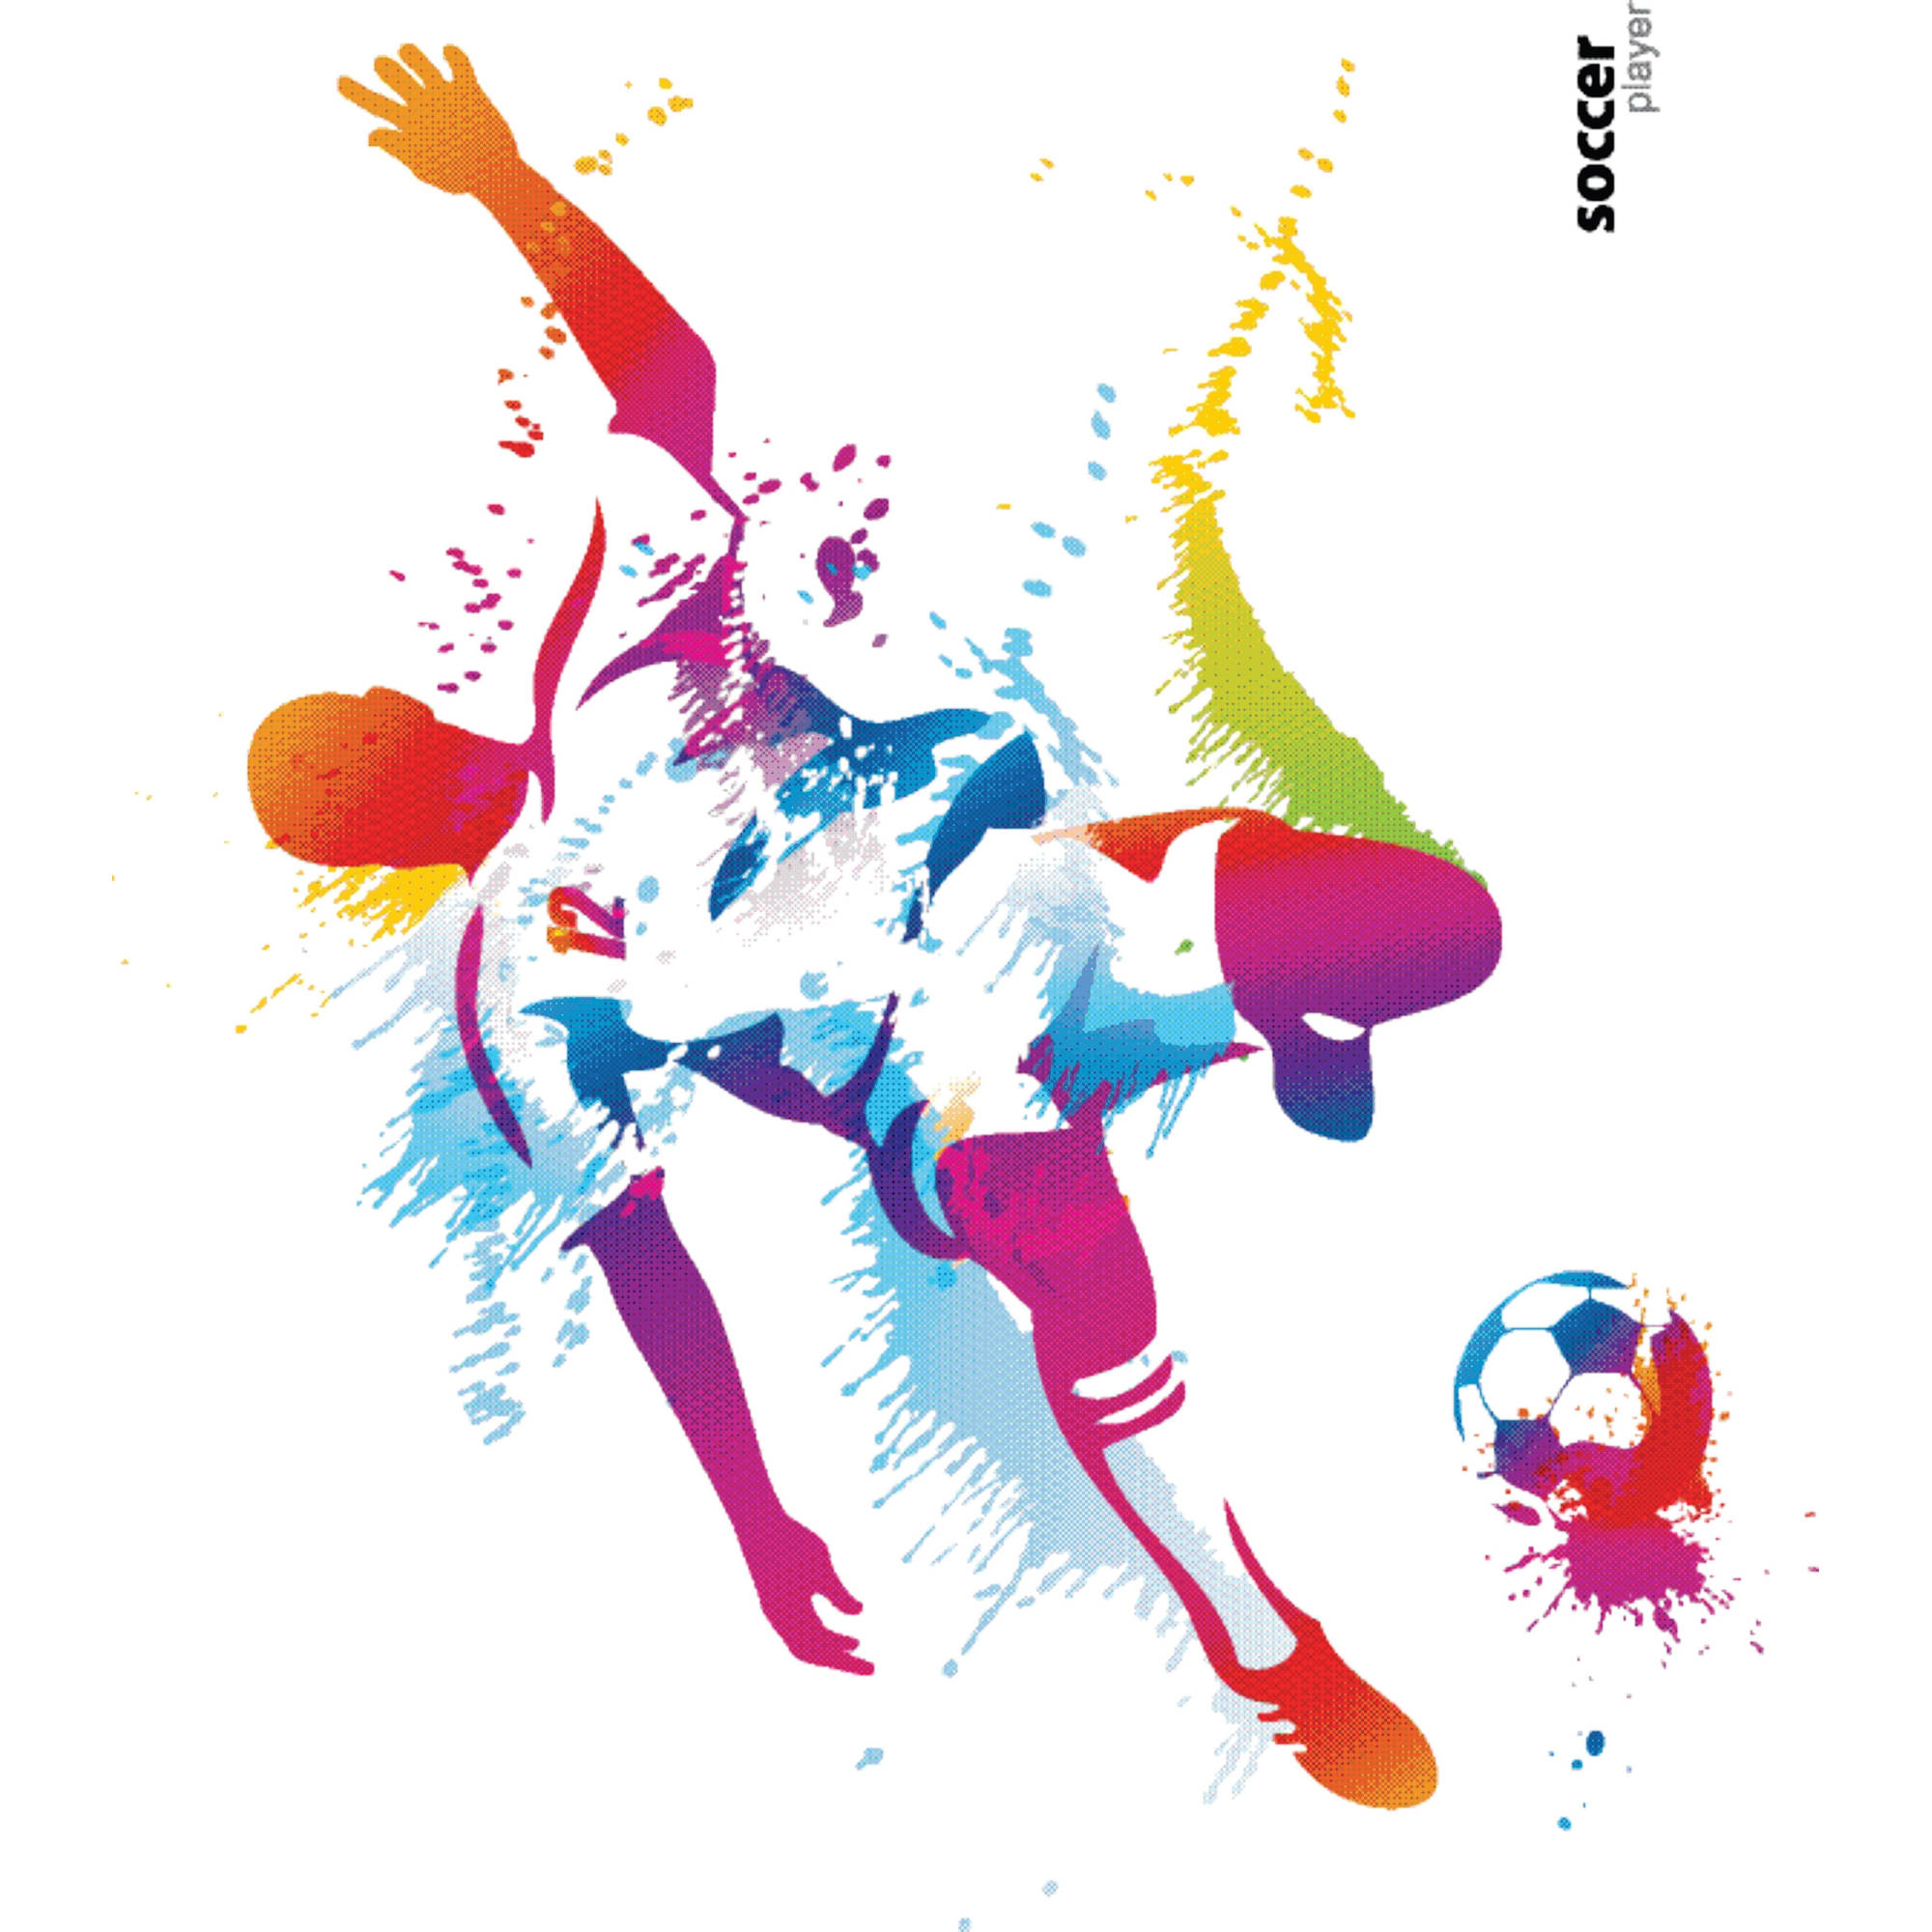 "Colorful Soccer Player Kicking Ball Vinyl Wall Decal Picture Art, 20"" x 18"", Multi Colored"